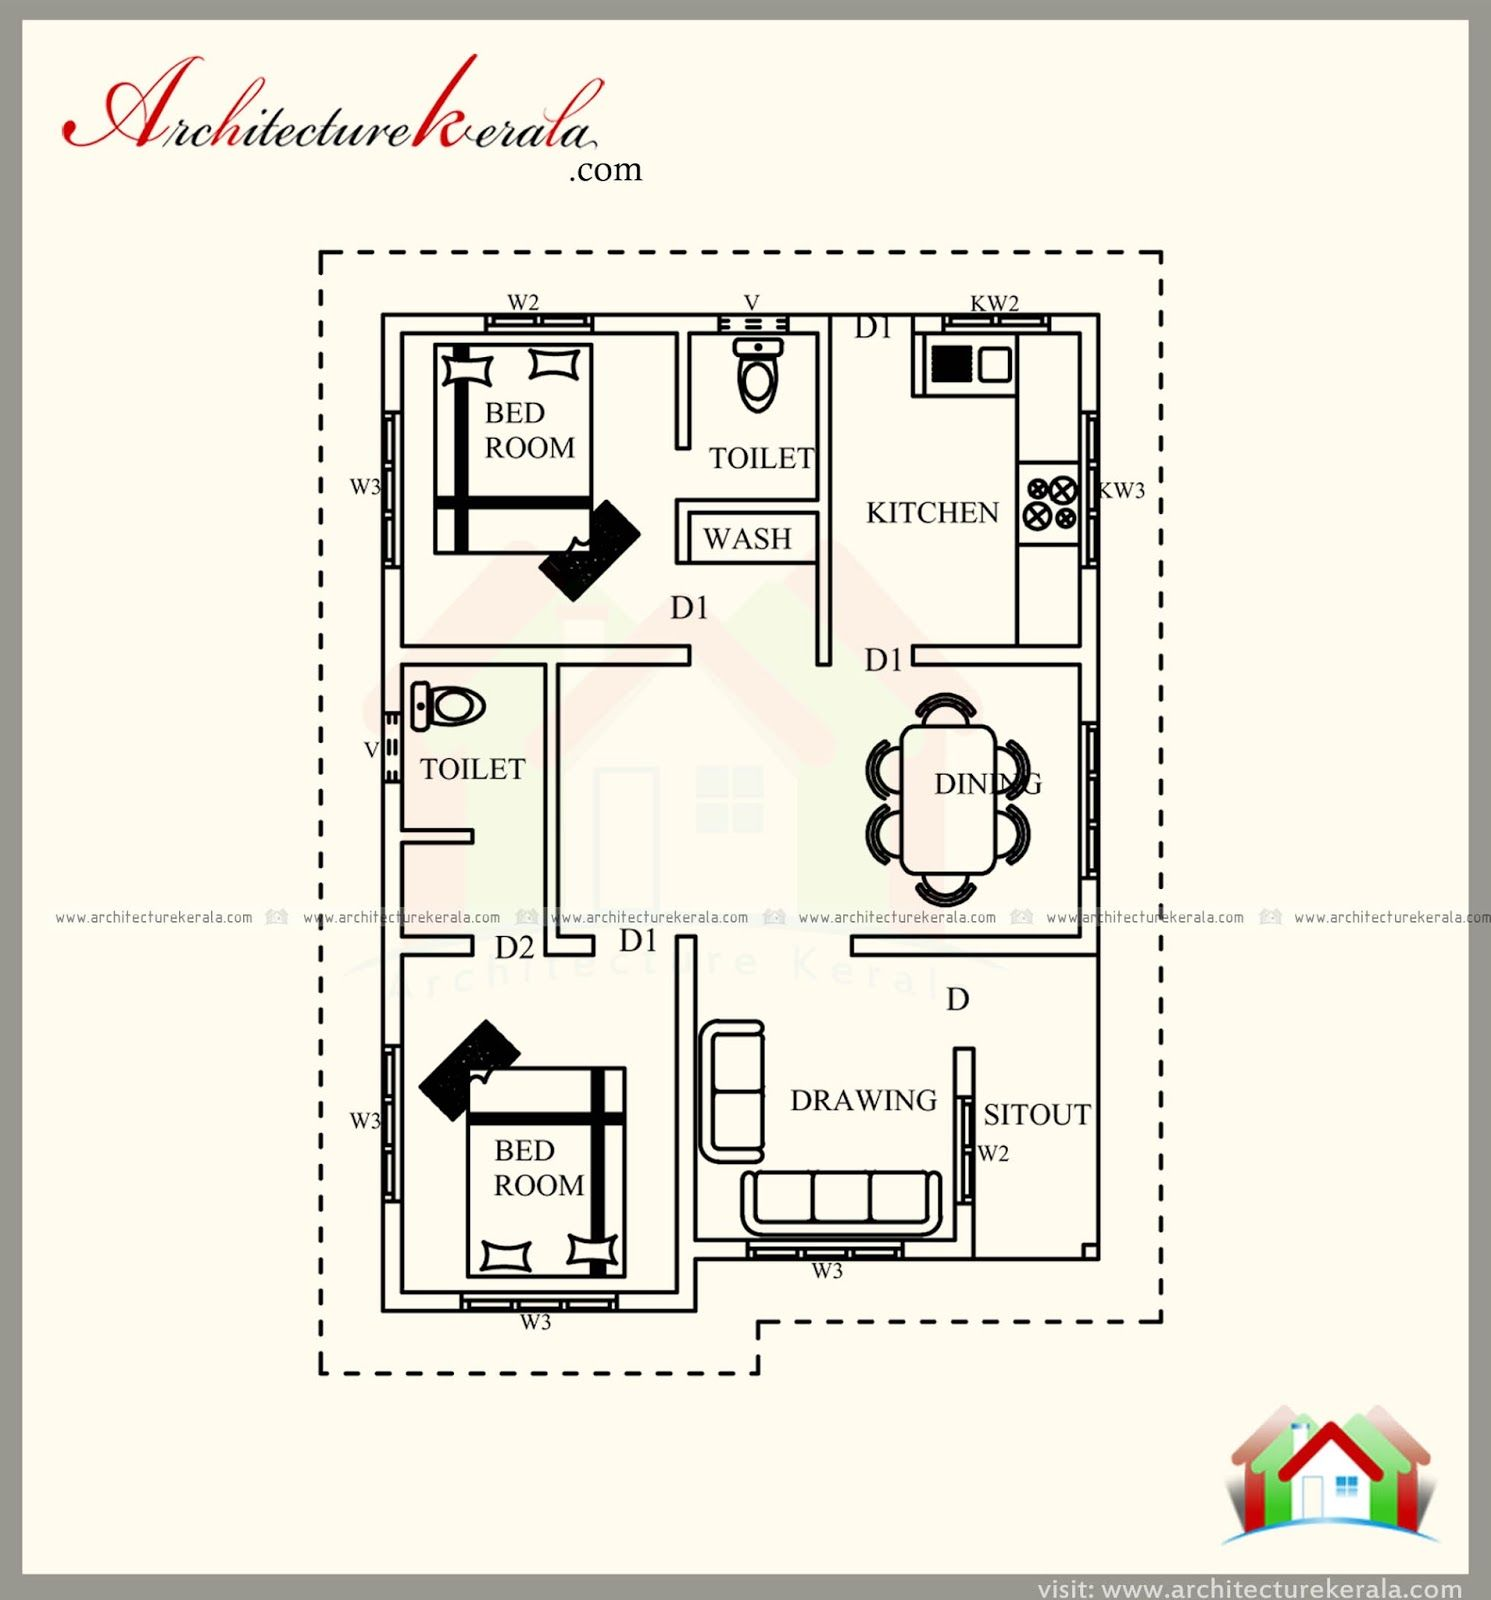 700 Square Feet House Plan With New Different Contemporary Elevations Architecture Kerala Southern House Plans Contemporary House Plans New House Plans